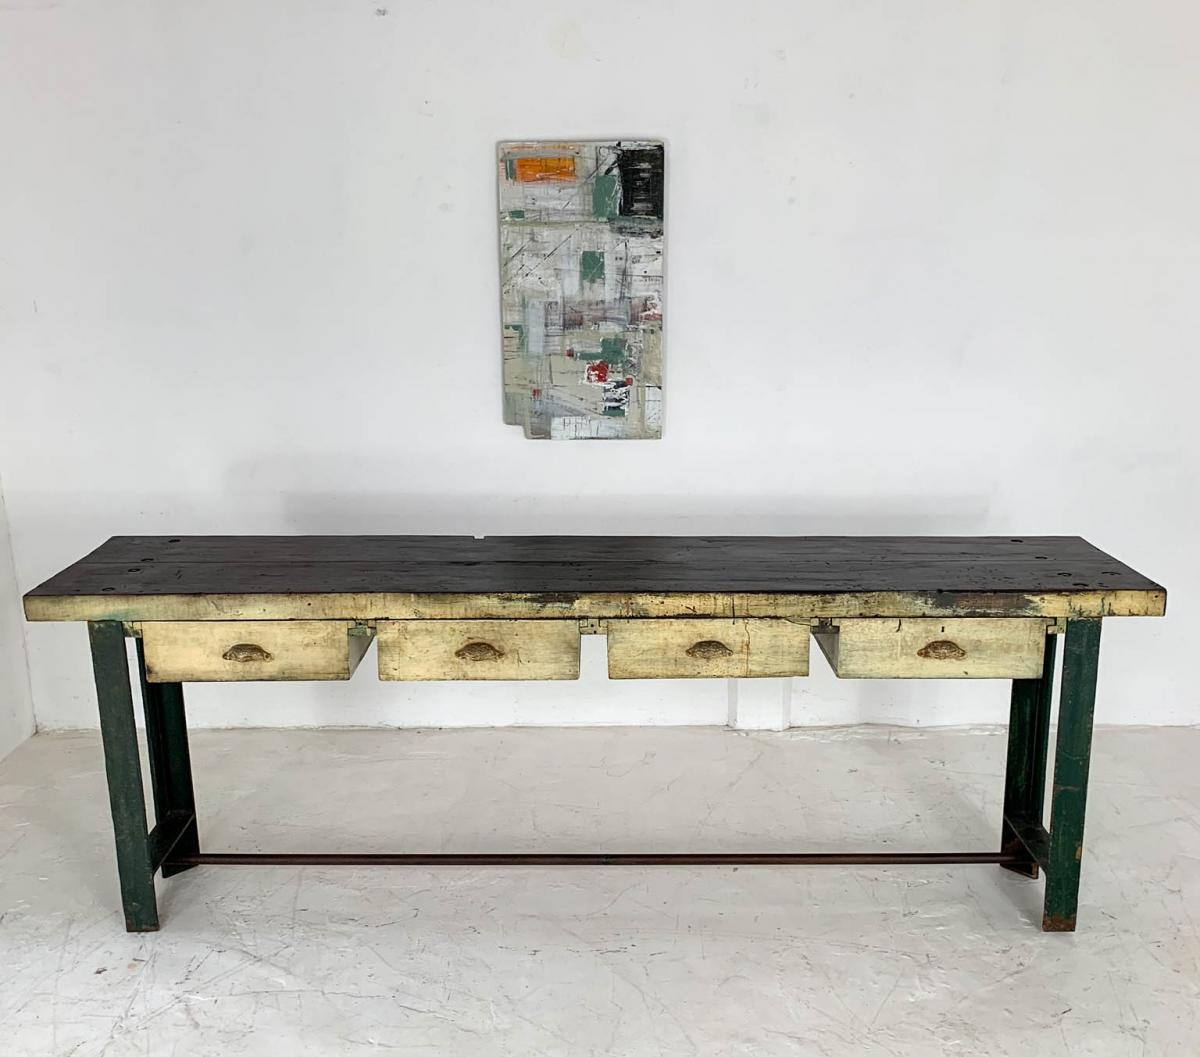 Vintage Industrial Engineer's Workbench Side Table on Cast Iron Ends